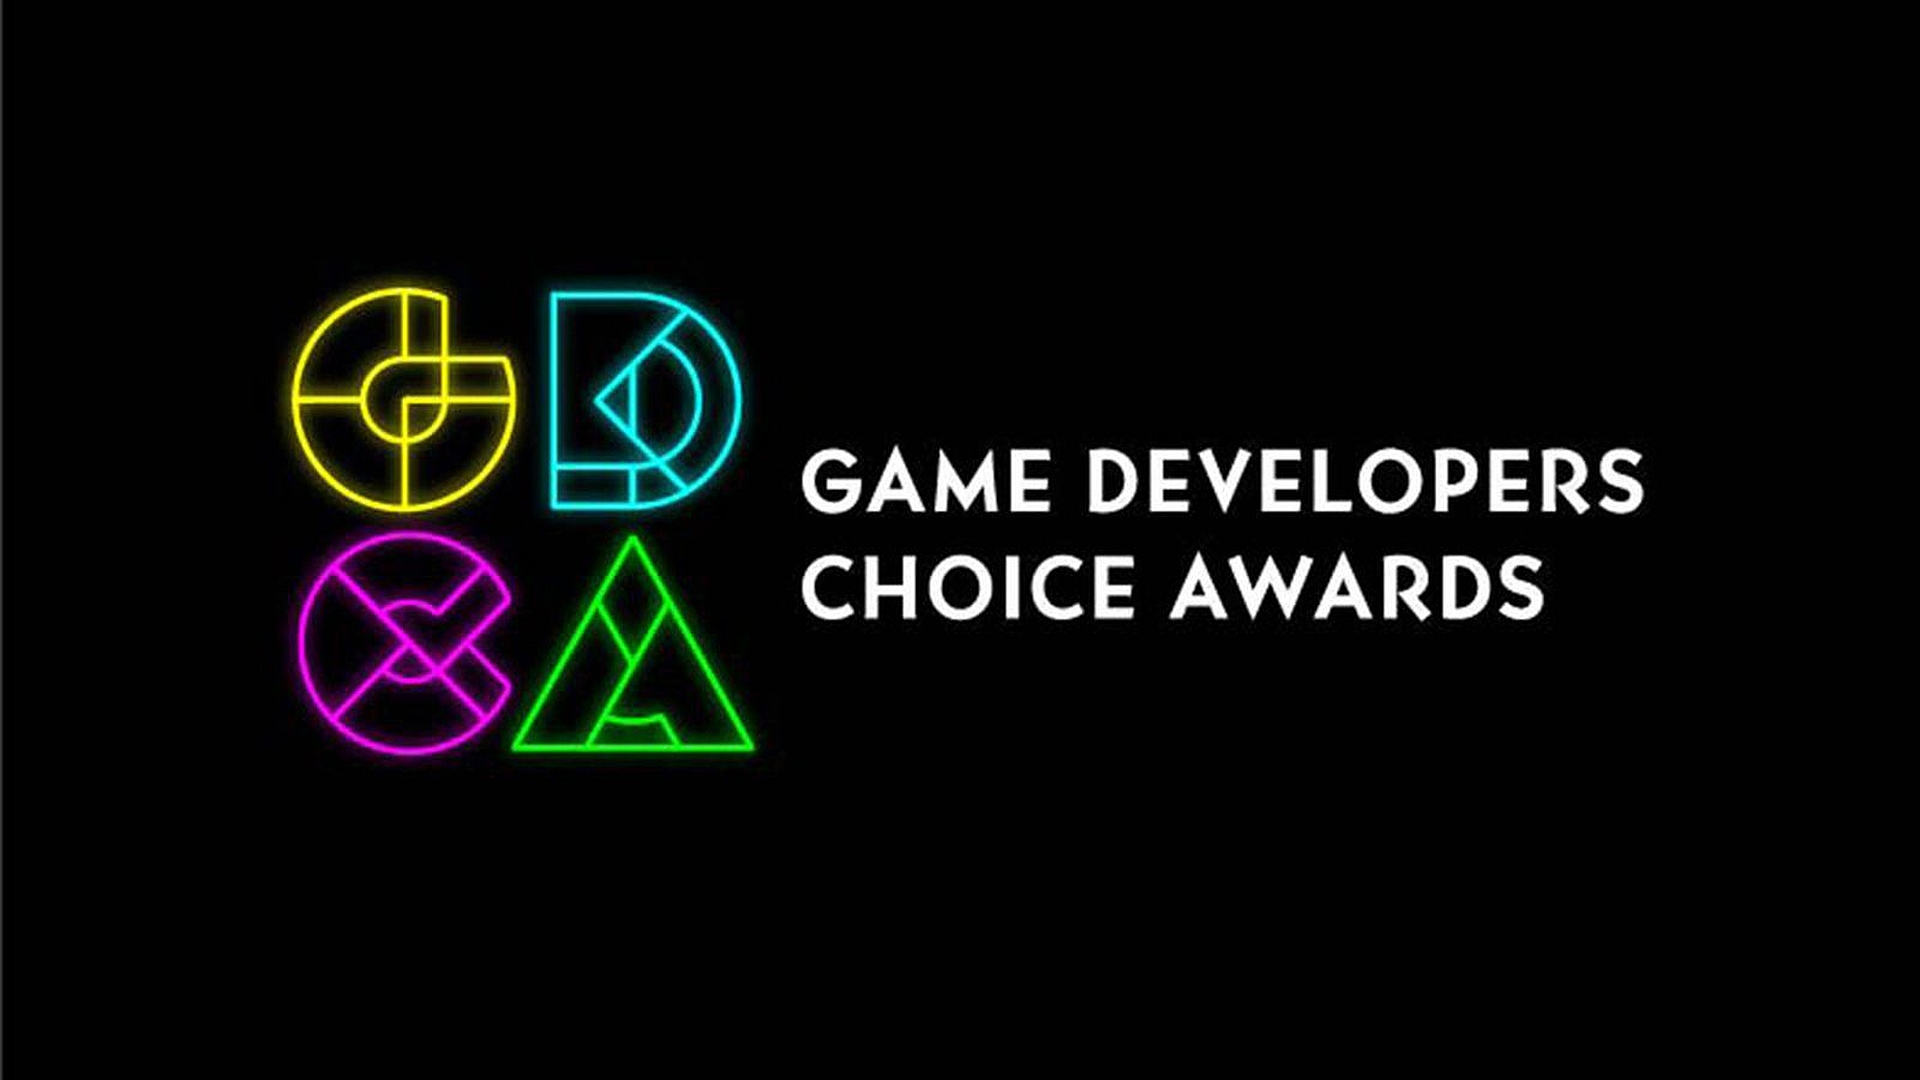 Nominees for GDC 2018 Choice Awards Announced - Horizon ...